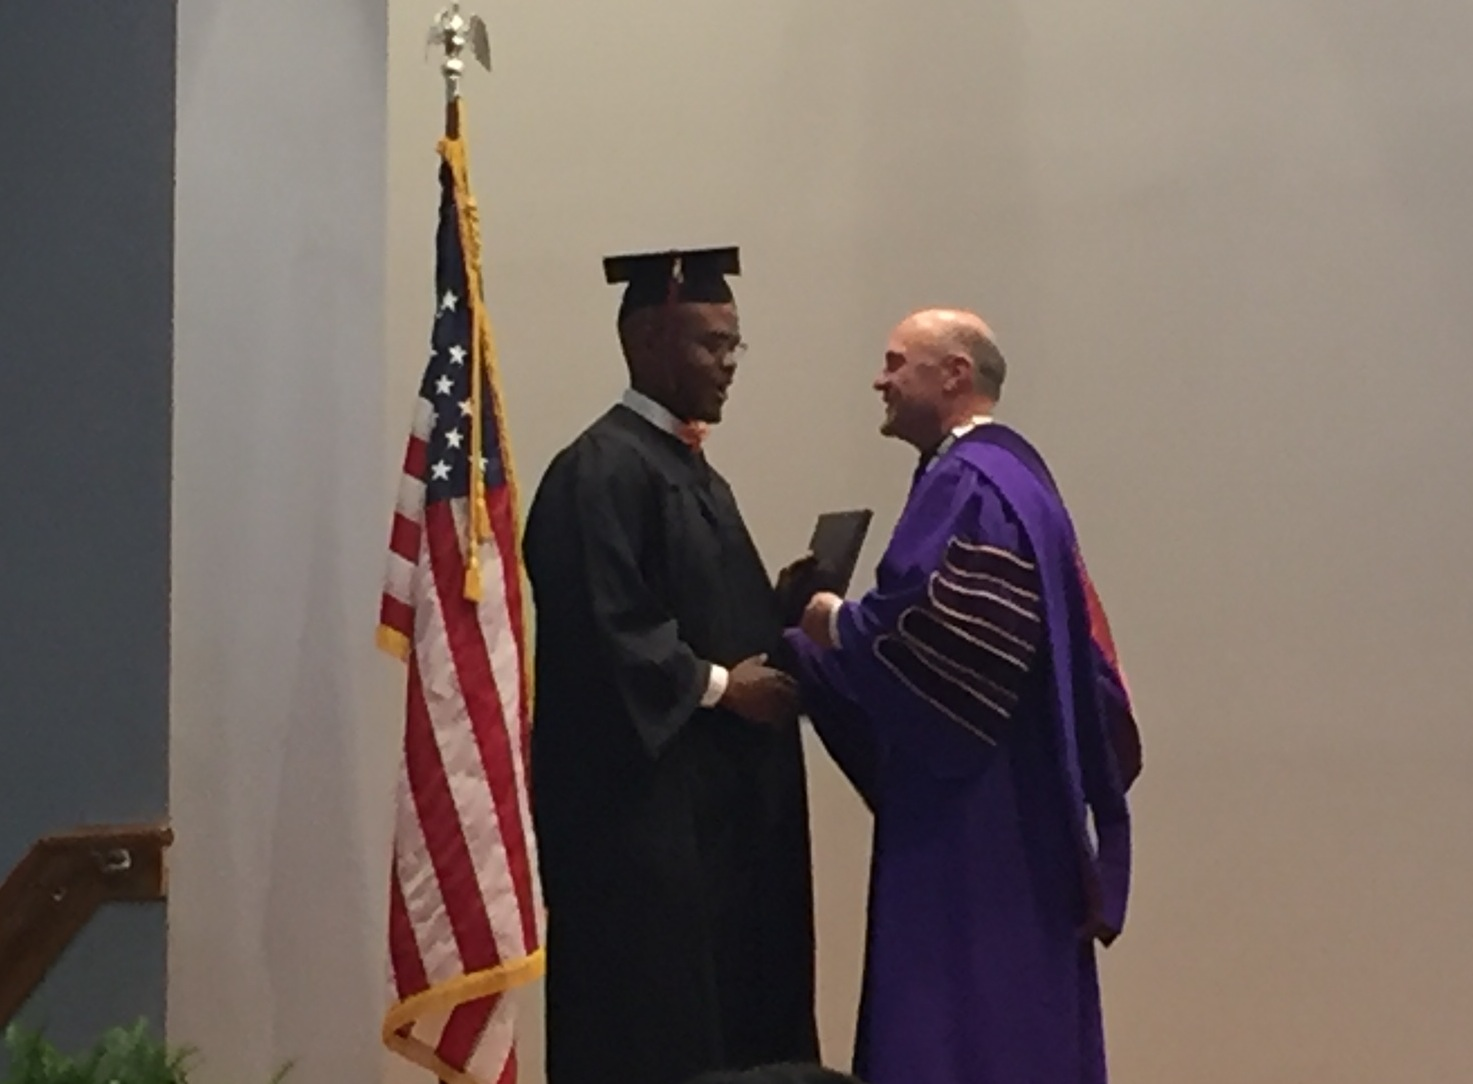 Steven Fleming accepts his certificate from President Clements.